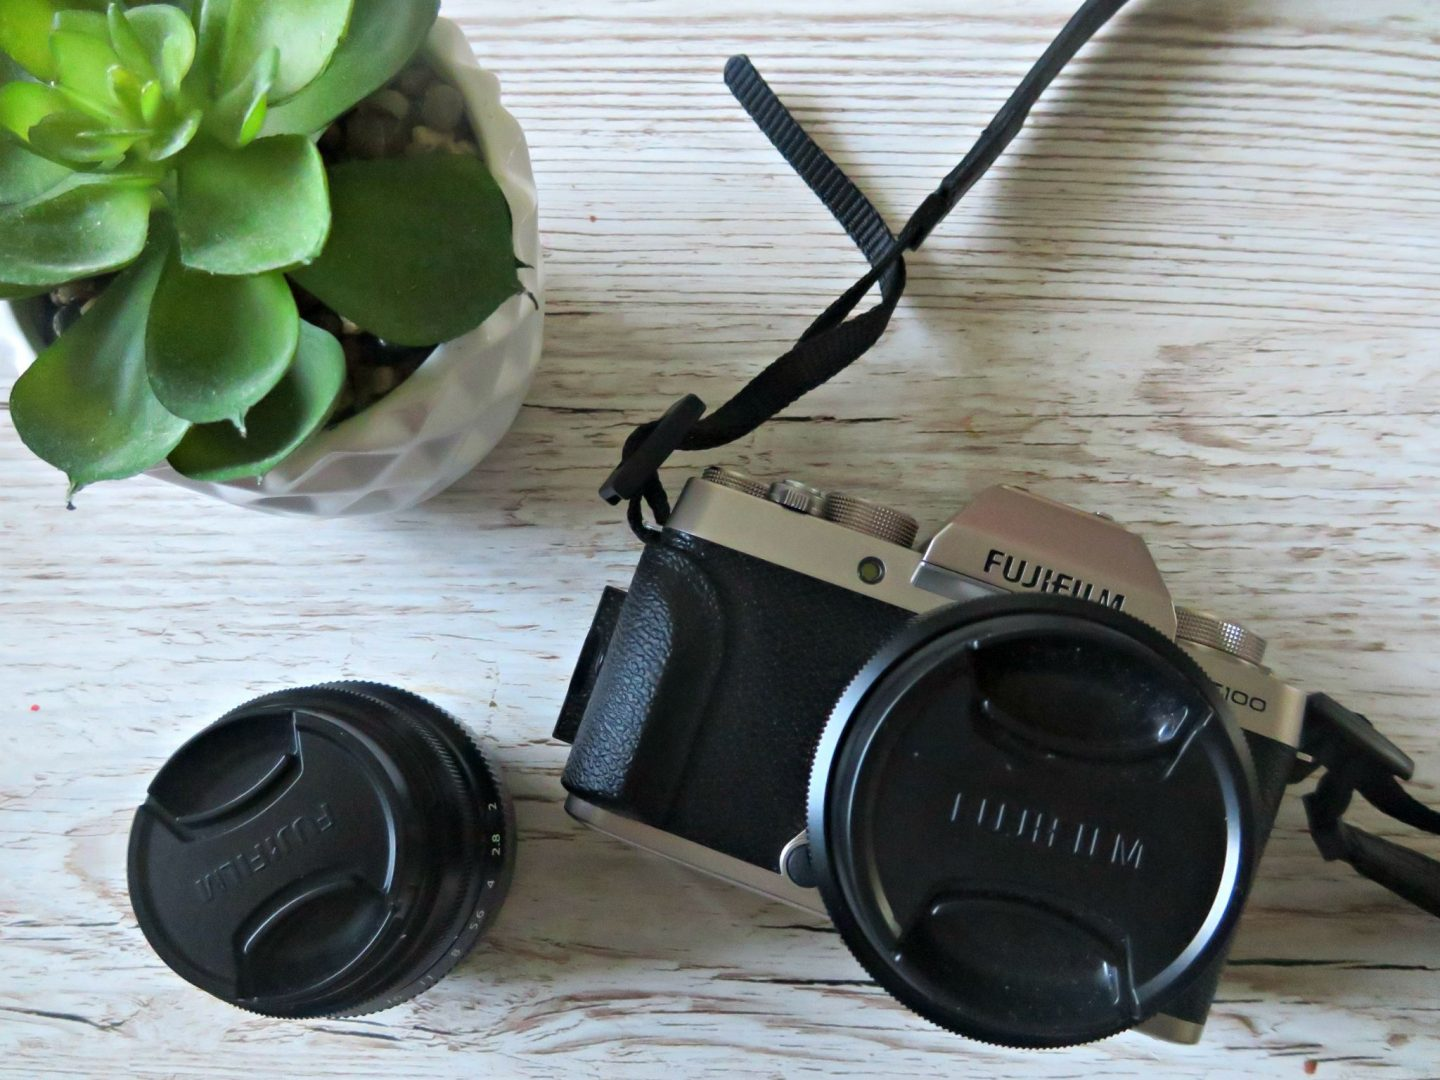 FUJIFILM X-T100 REVIEW – IS THIS THE BEST BLOG CAMERA?